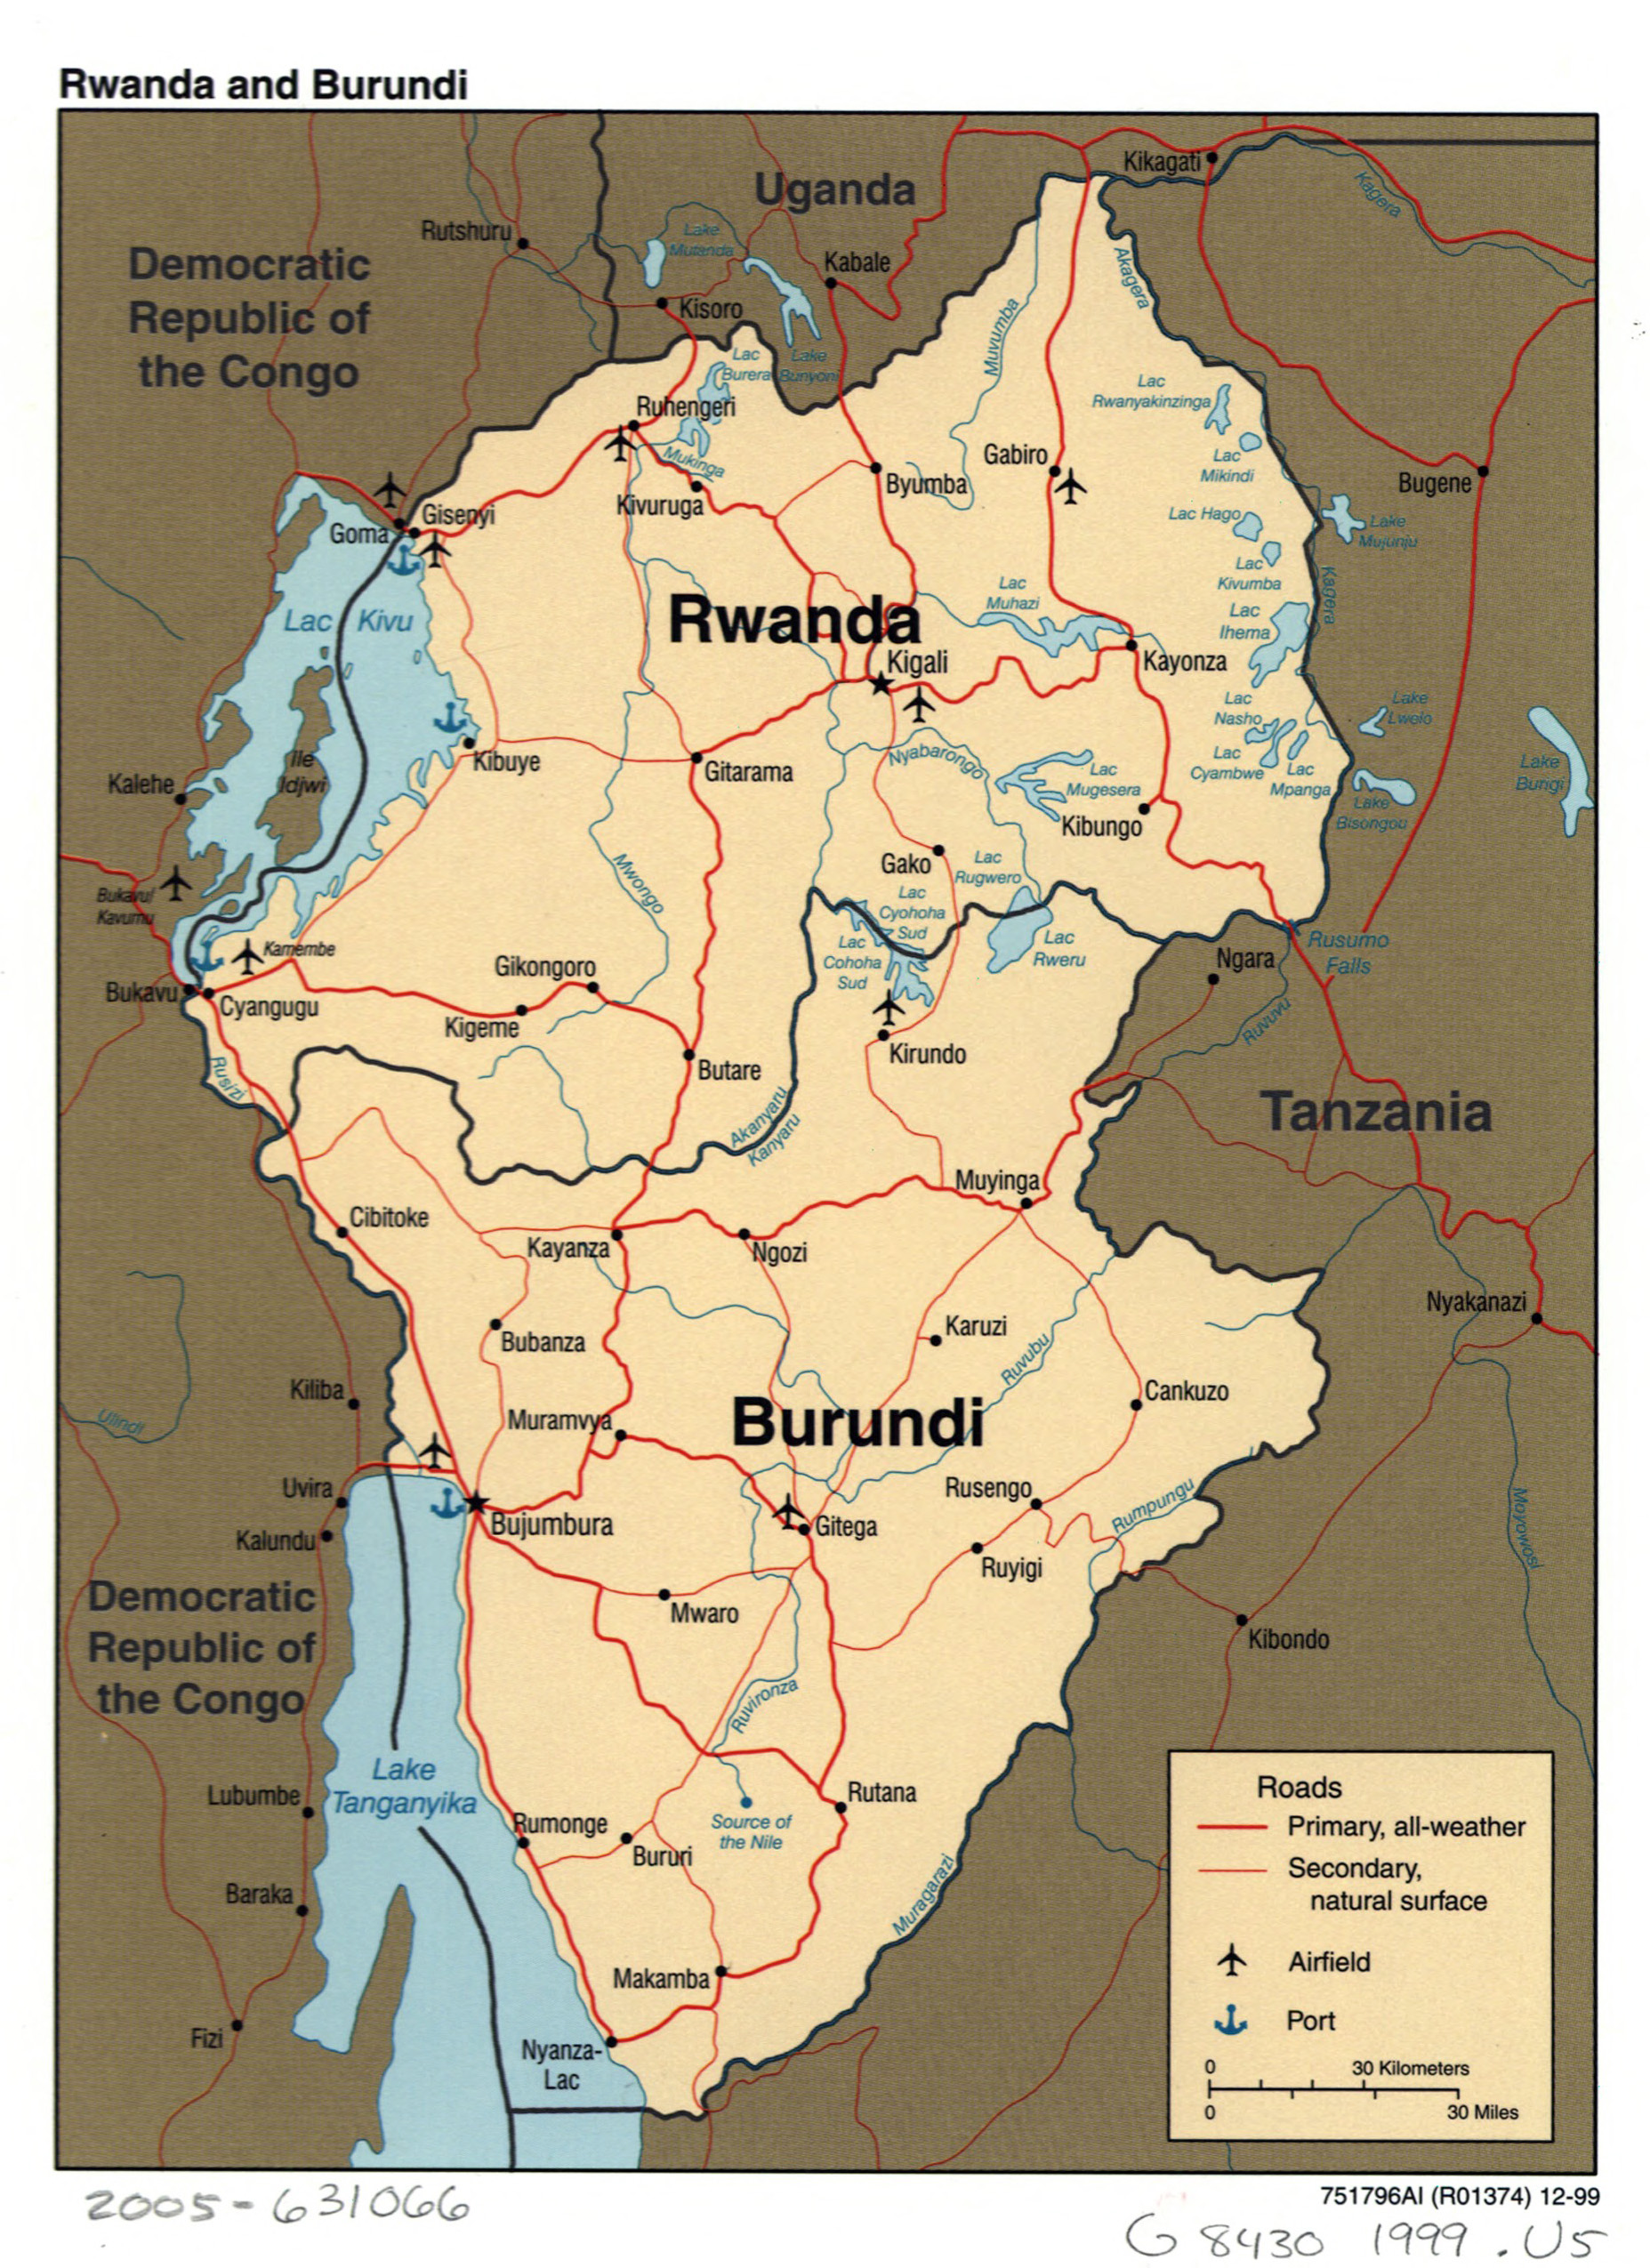 Large Detailed Political Map Of Rwanda And Burundi With Roads Major